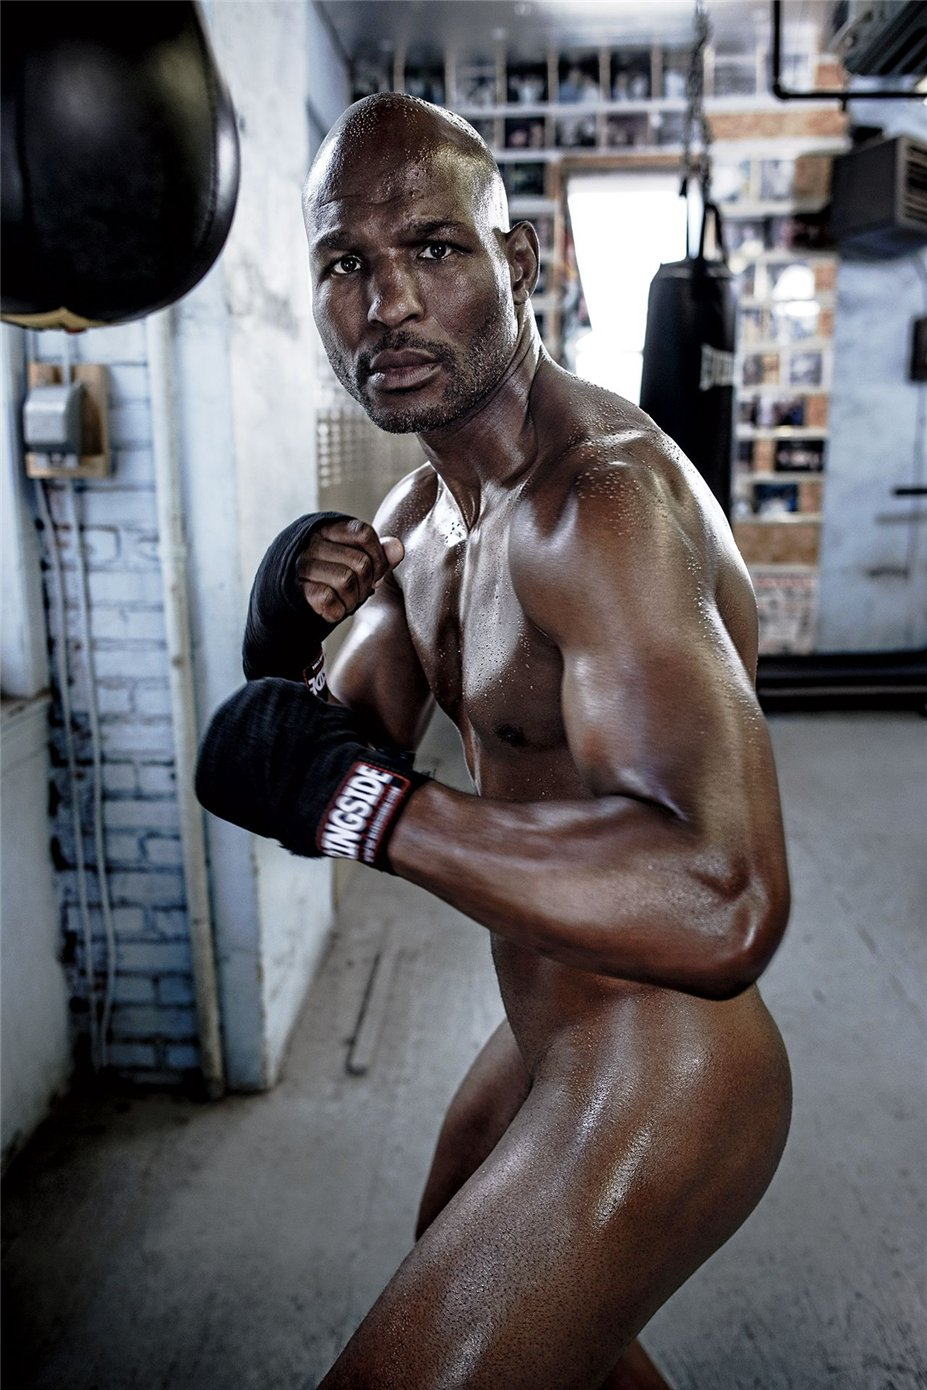 ESPN Magazine Body Issue 2014 - Bernard Hopkins / Бернард Хопкинс